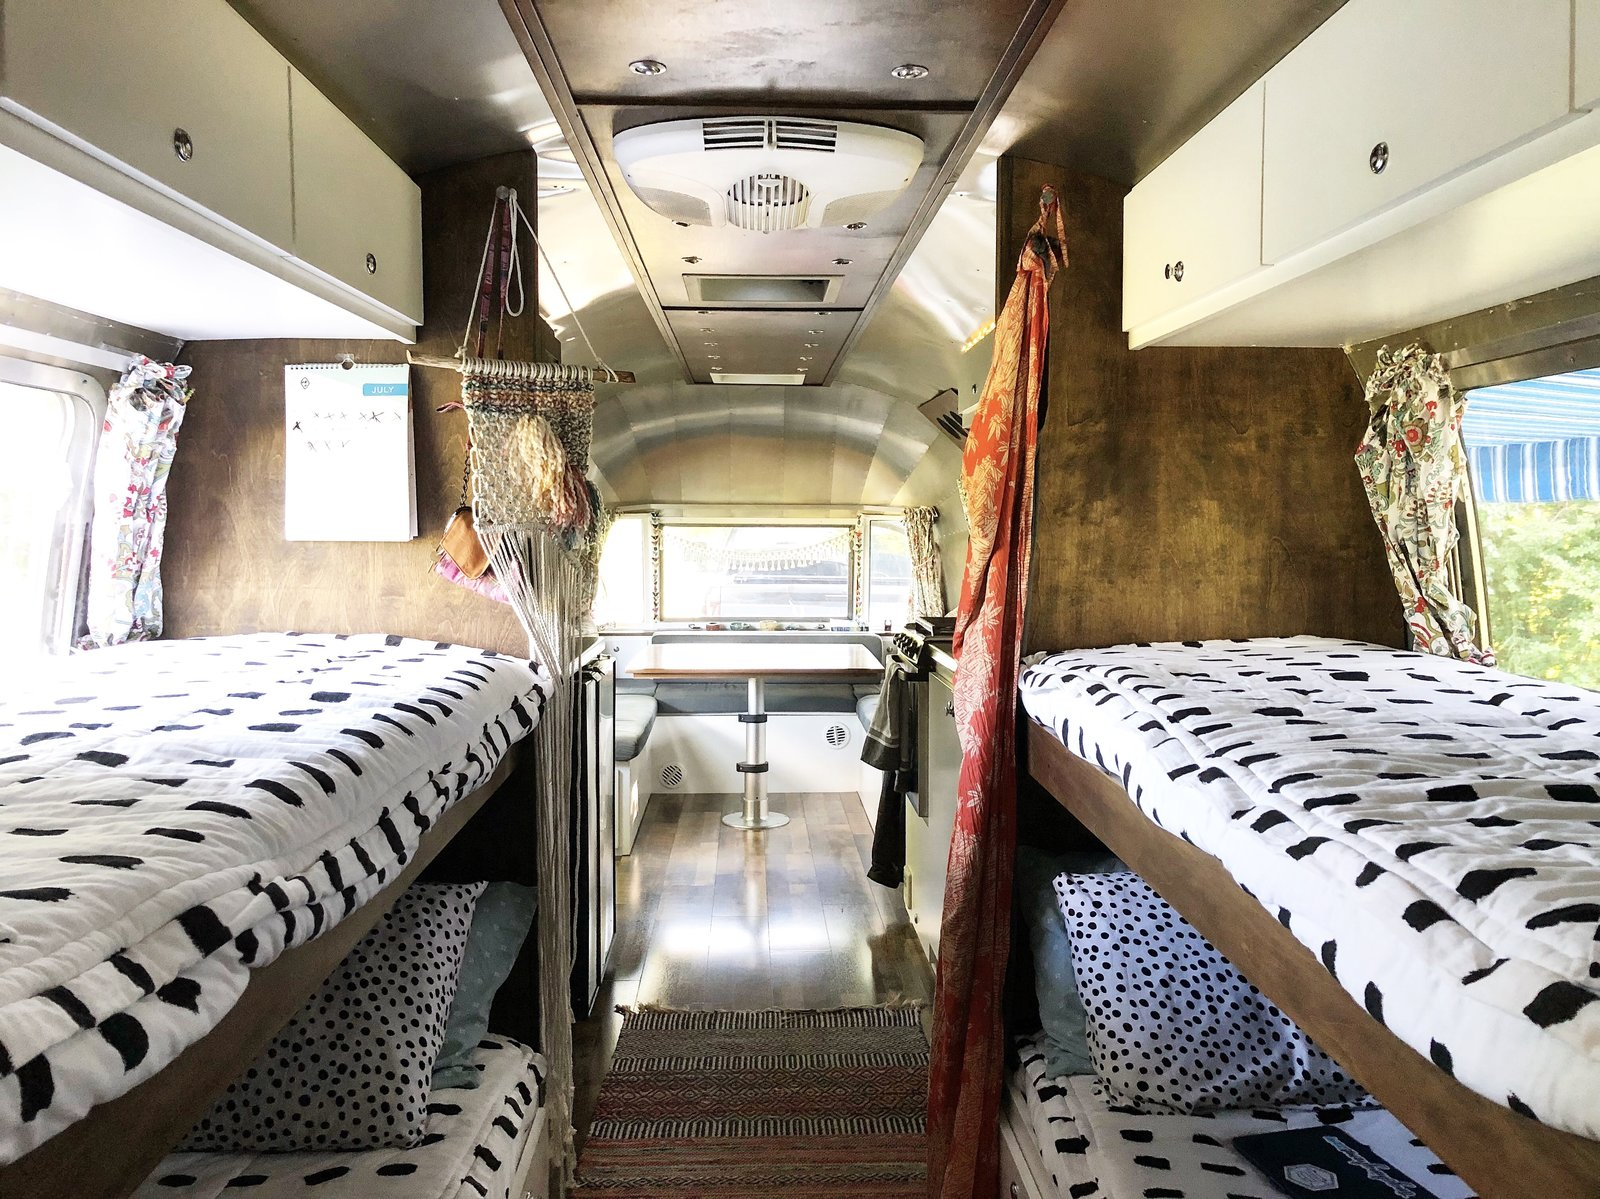 Bedroom, Bunks, and Medium Hardwood Floor A look at the double bunk-beds that can convert into couches when not in use.    Photo 7 of 12 in A 1970s Airstream Is Revamped Into an Off-Grid Home For Six from 1972 Vintage Airstream Trailer